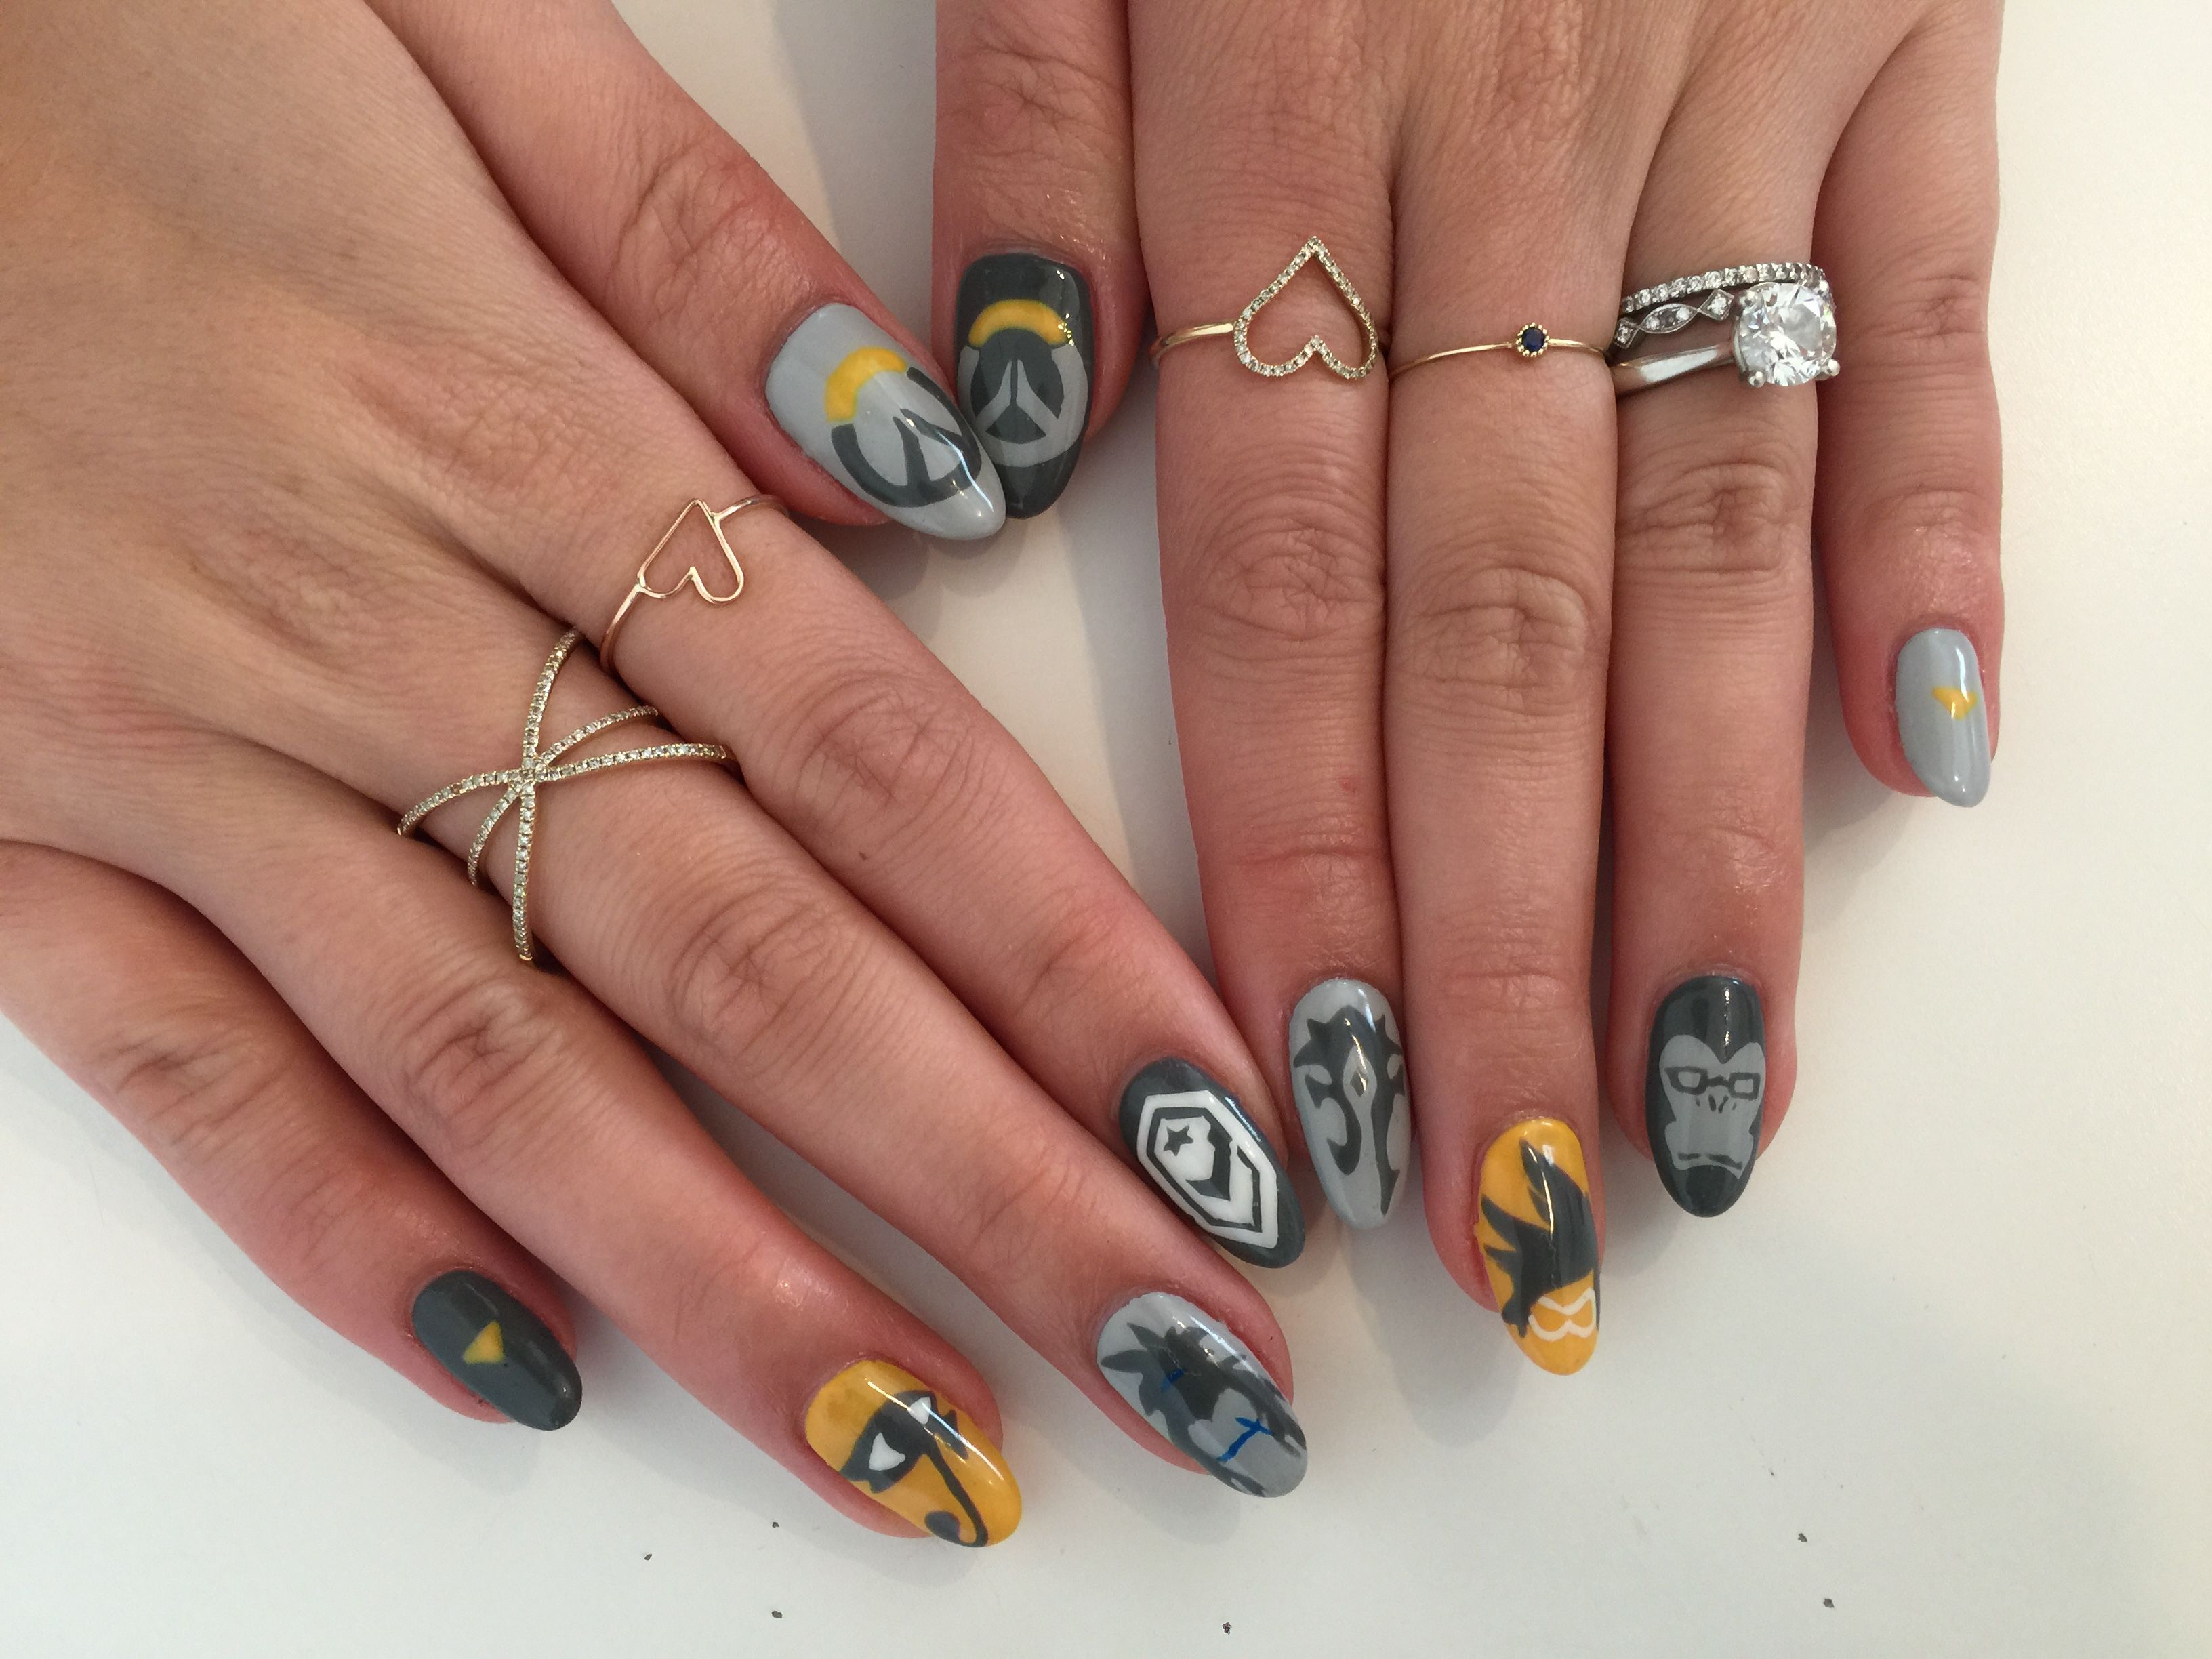 Nail game on point bad ass overwatch nails nails games nail game on point bad ass overwatch nails prinsesfo Choice Image